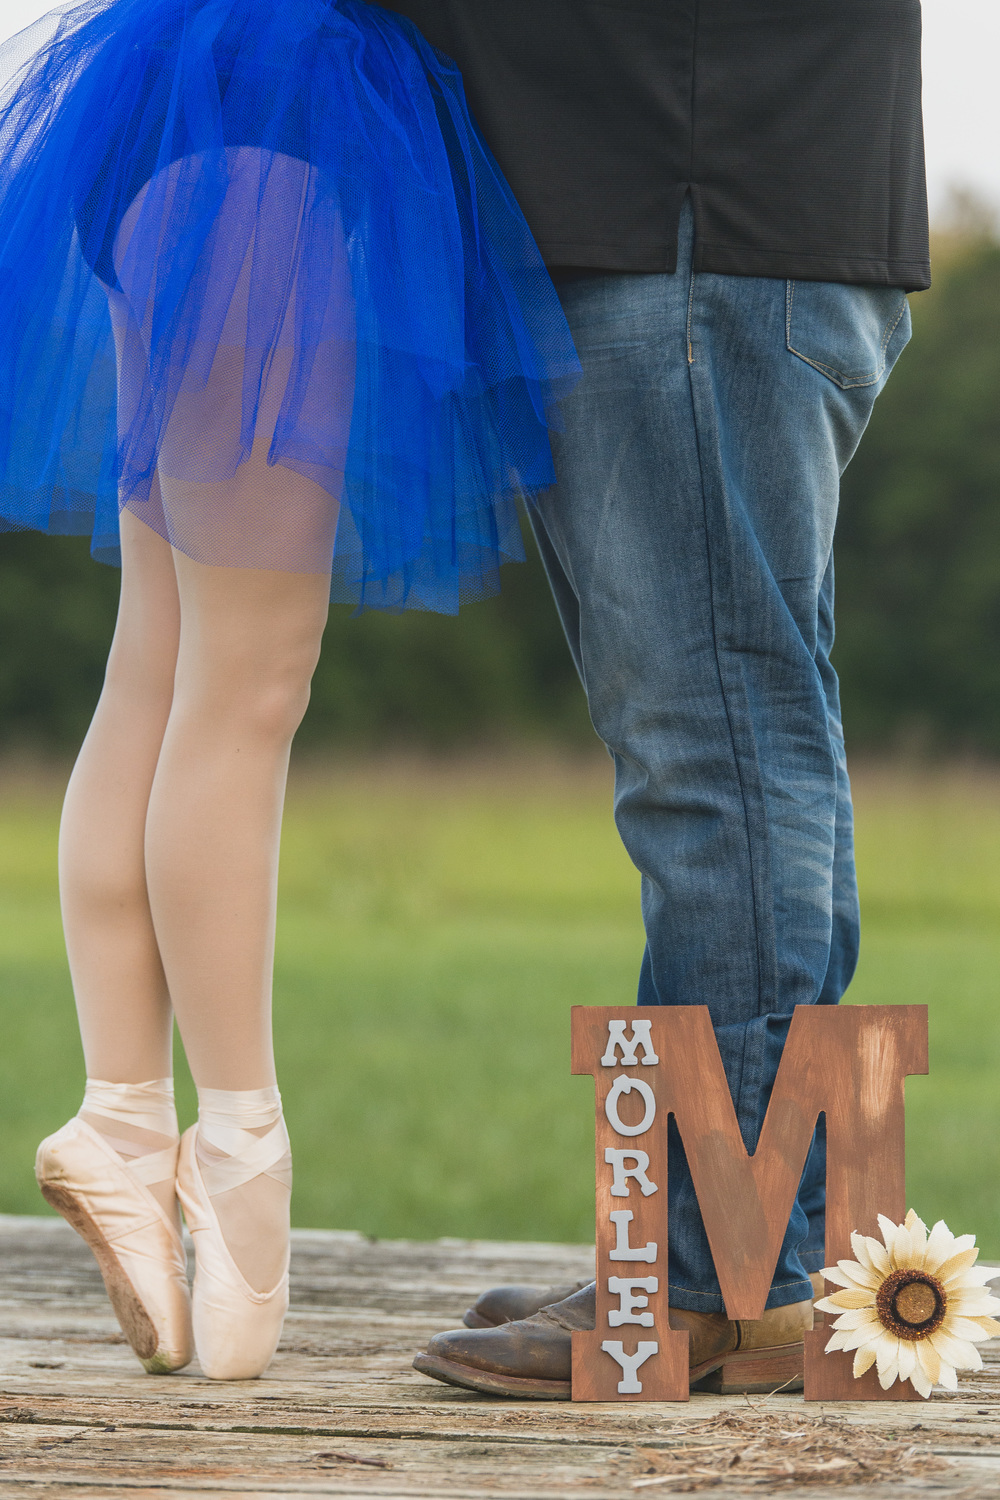 Engagement_session_farm_ranch_country_dance_ballet_lift_altavista_Lynchburg_VA_Photos20150821_0534.jpg